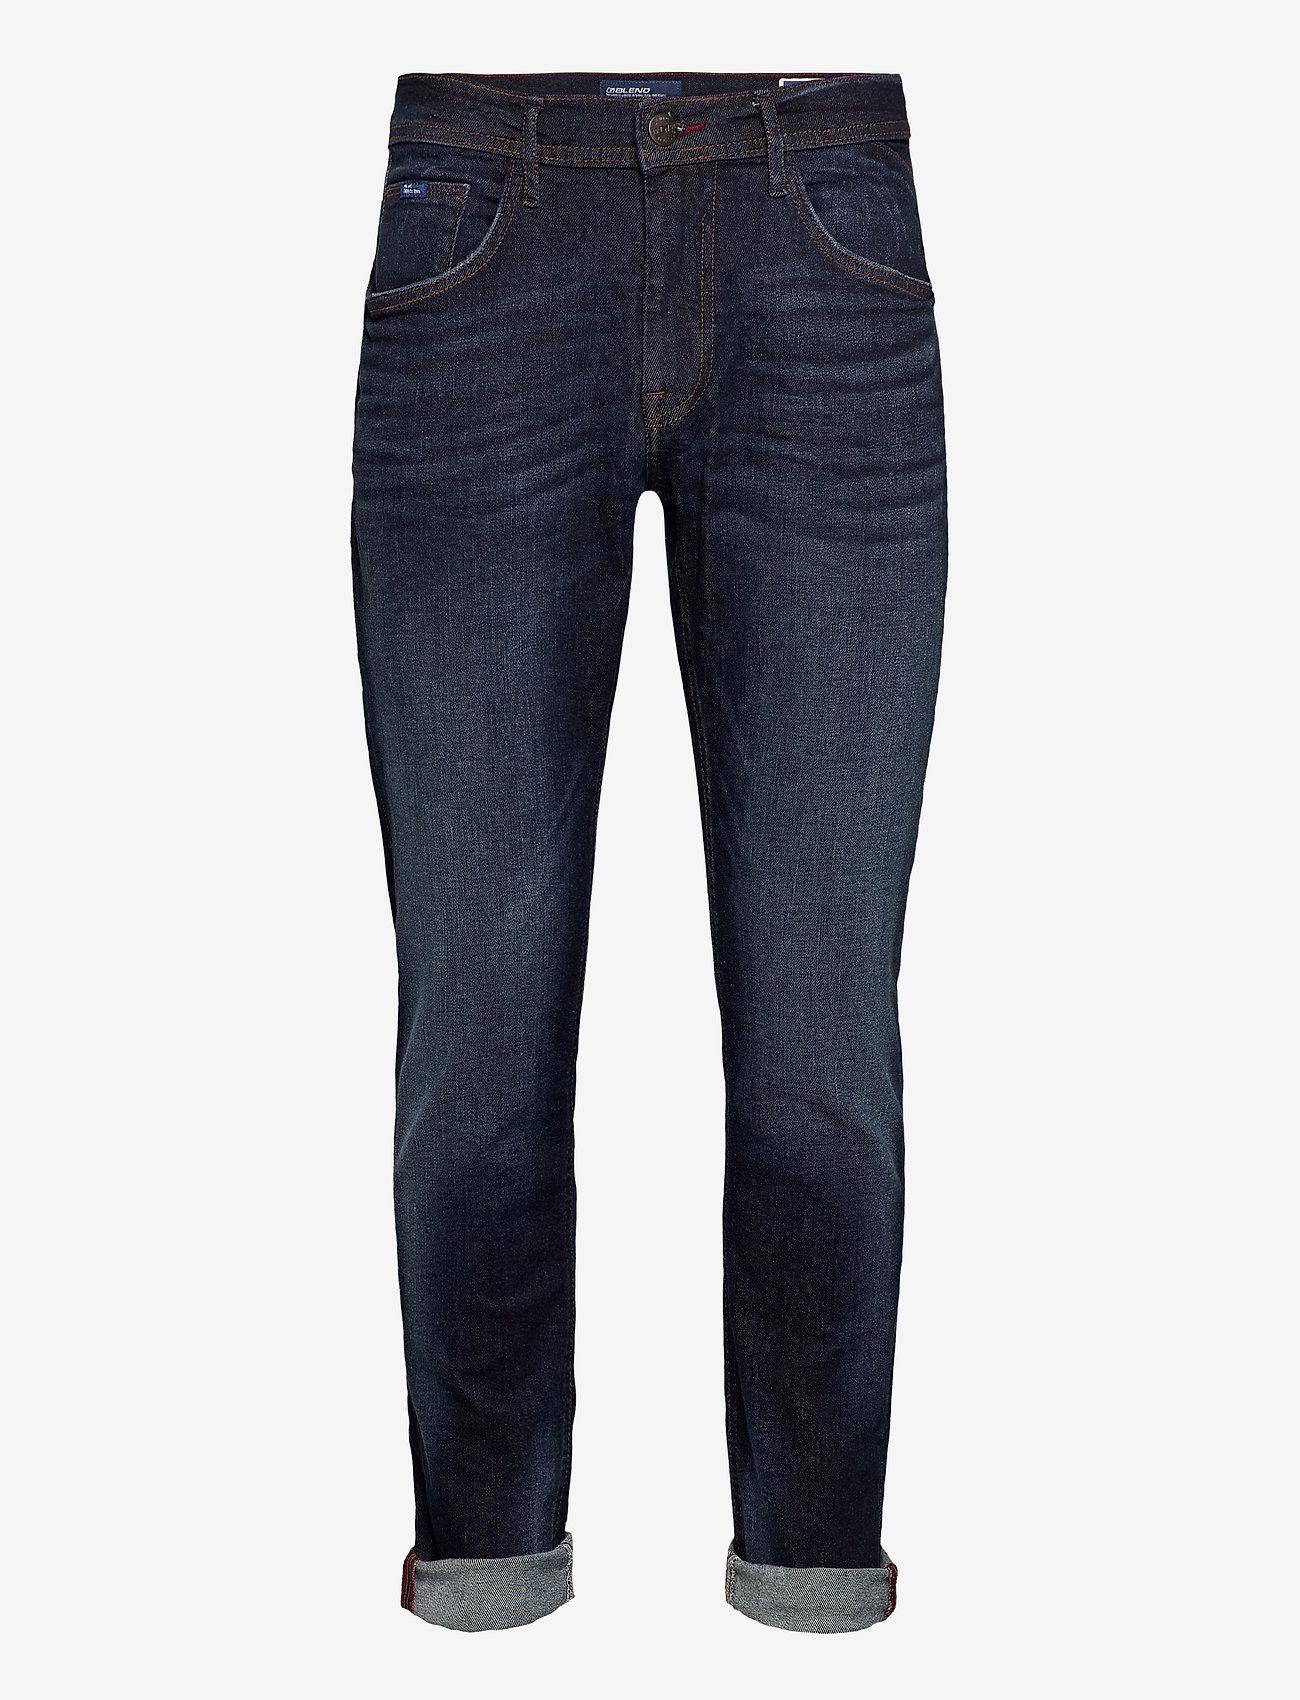 Blend - Jeans - Clean - slim jeans - denim dark blue - 0